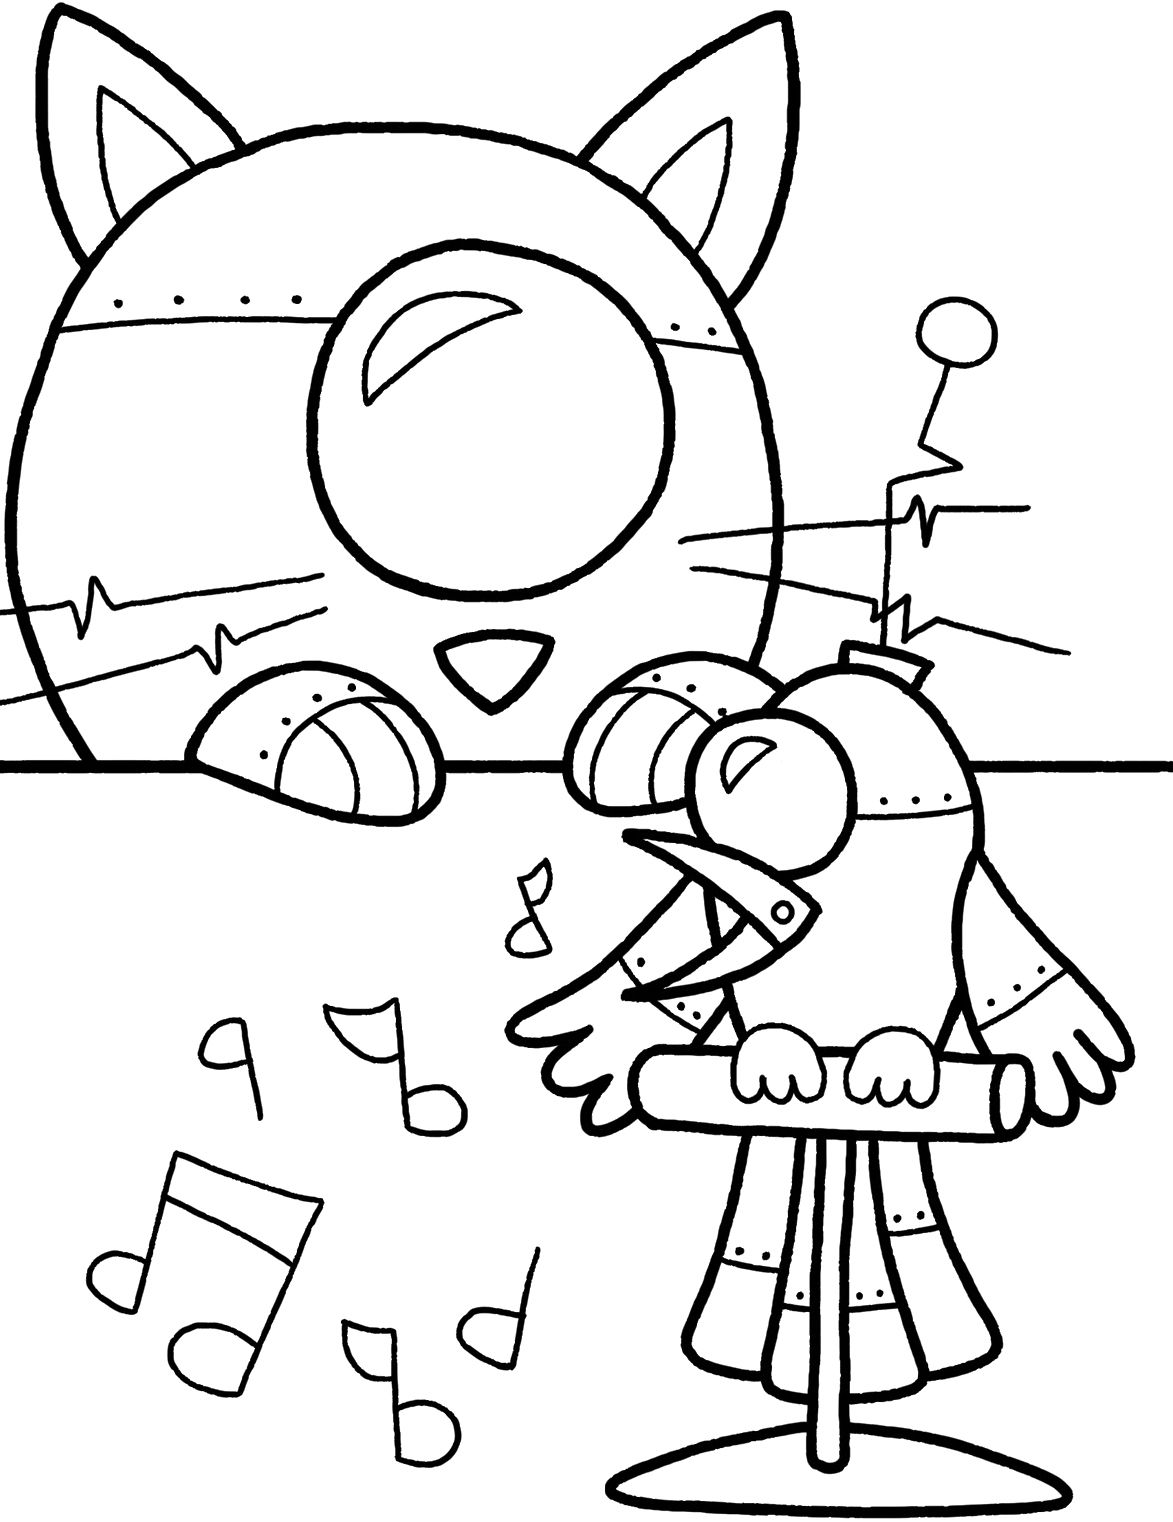 A Bird Singing Robot Coloring Pages Coloring Pages Coloring For